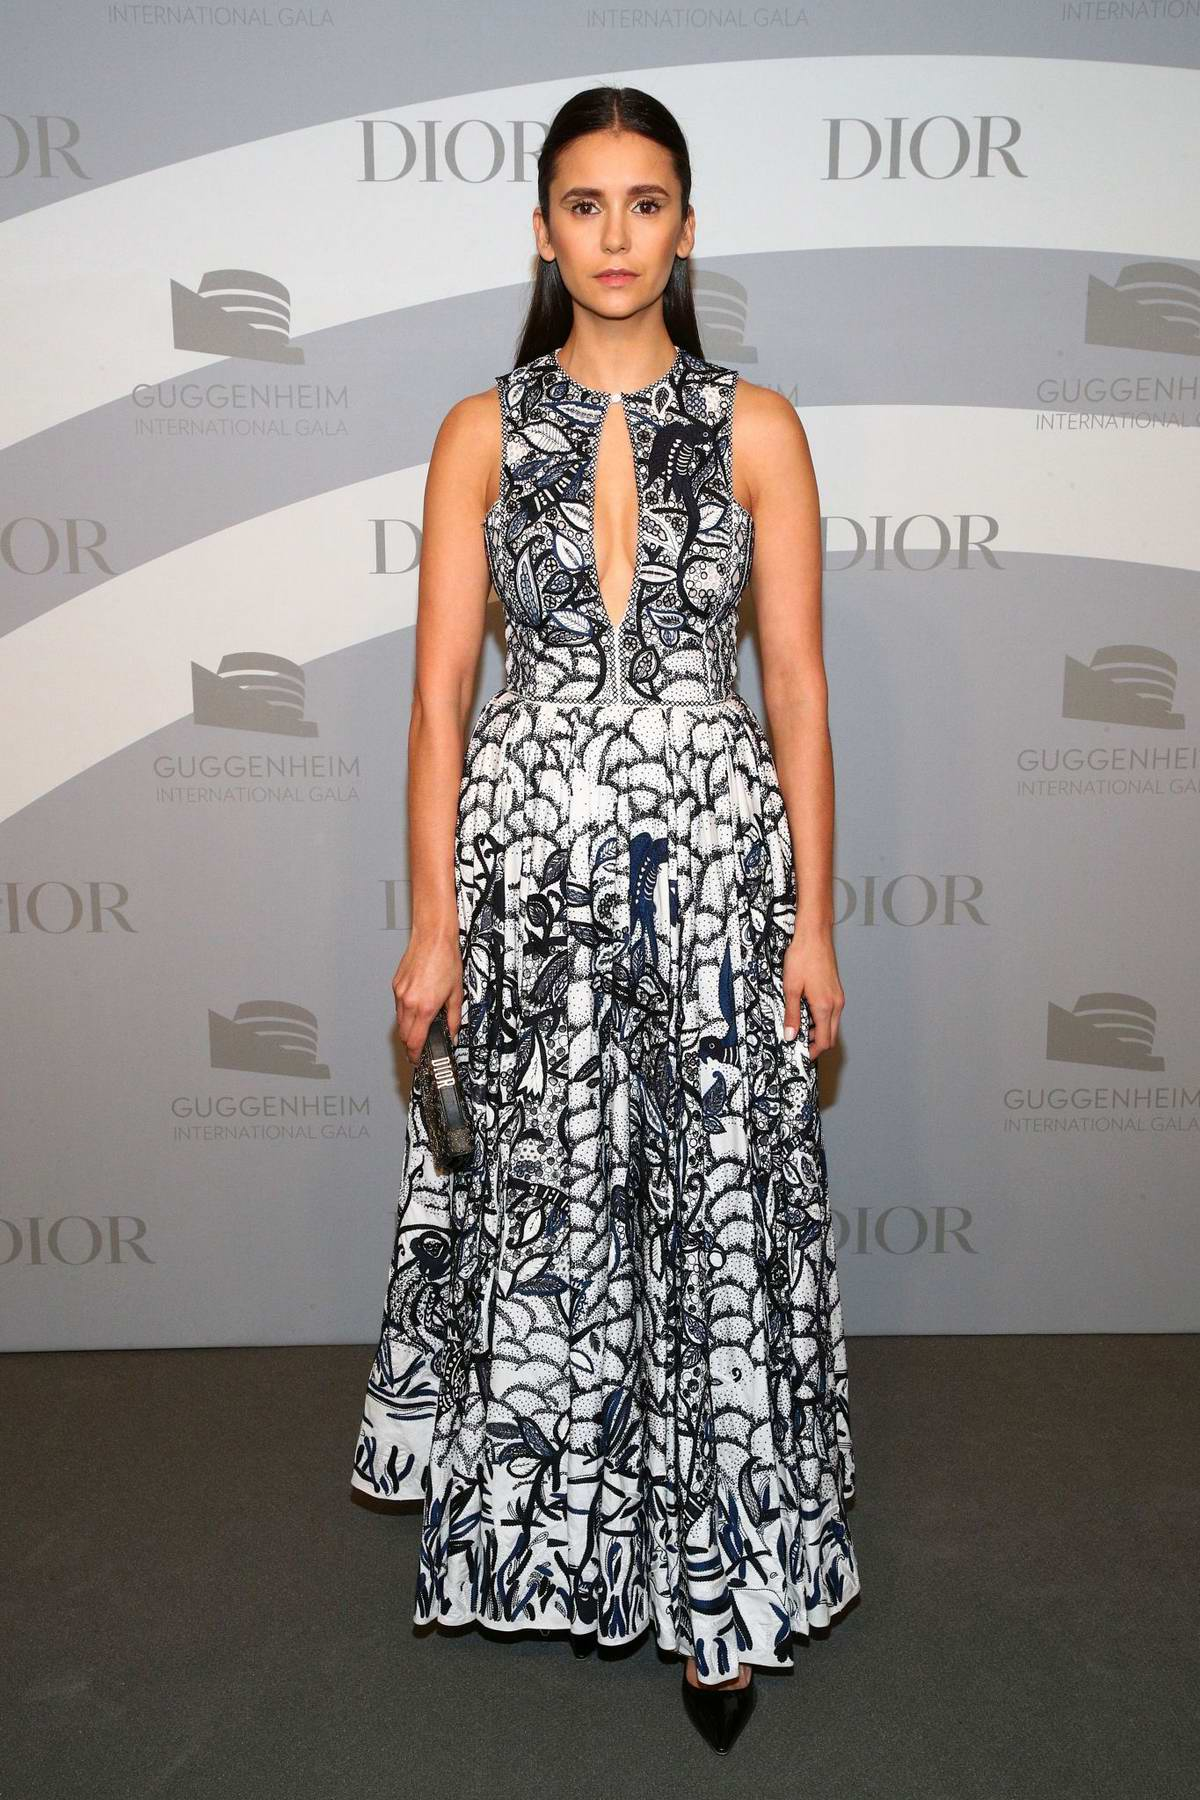 Nina Dobrev attends the 2019 Guggenheim International Gala in New York City